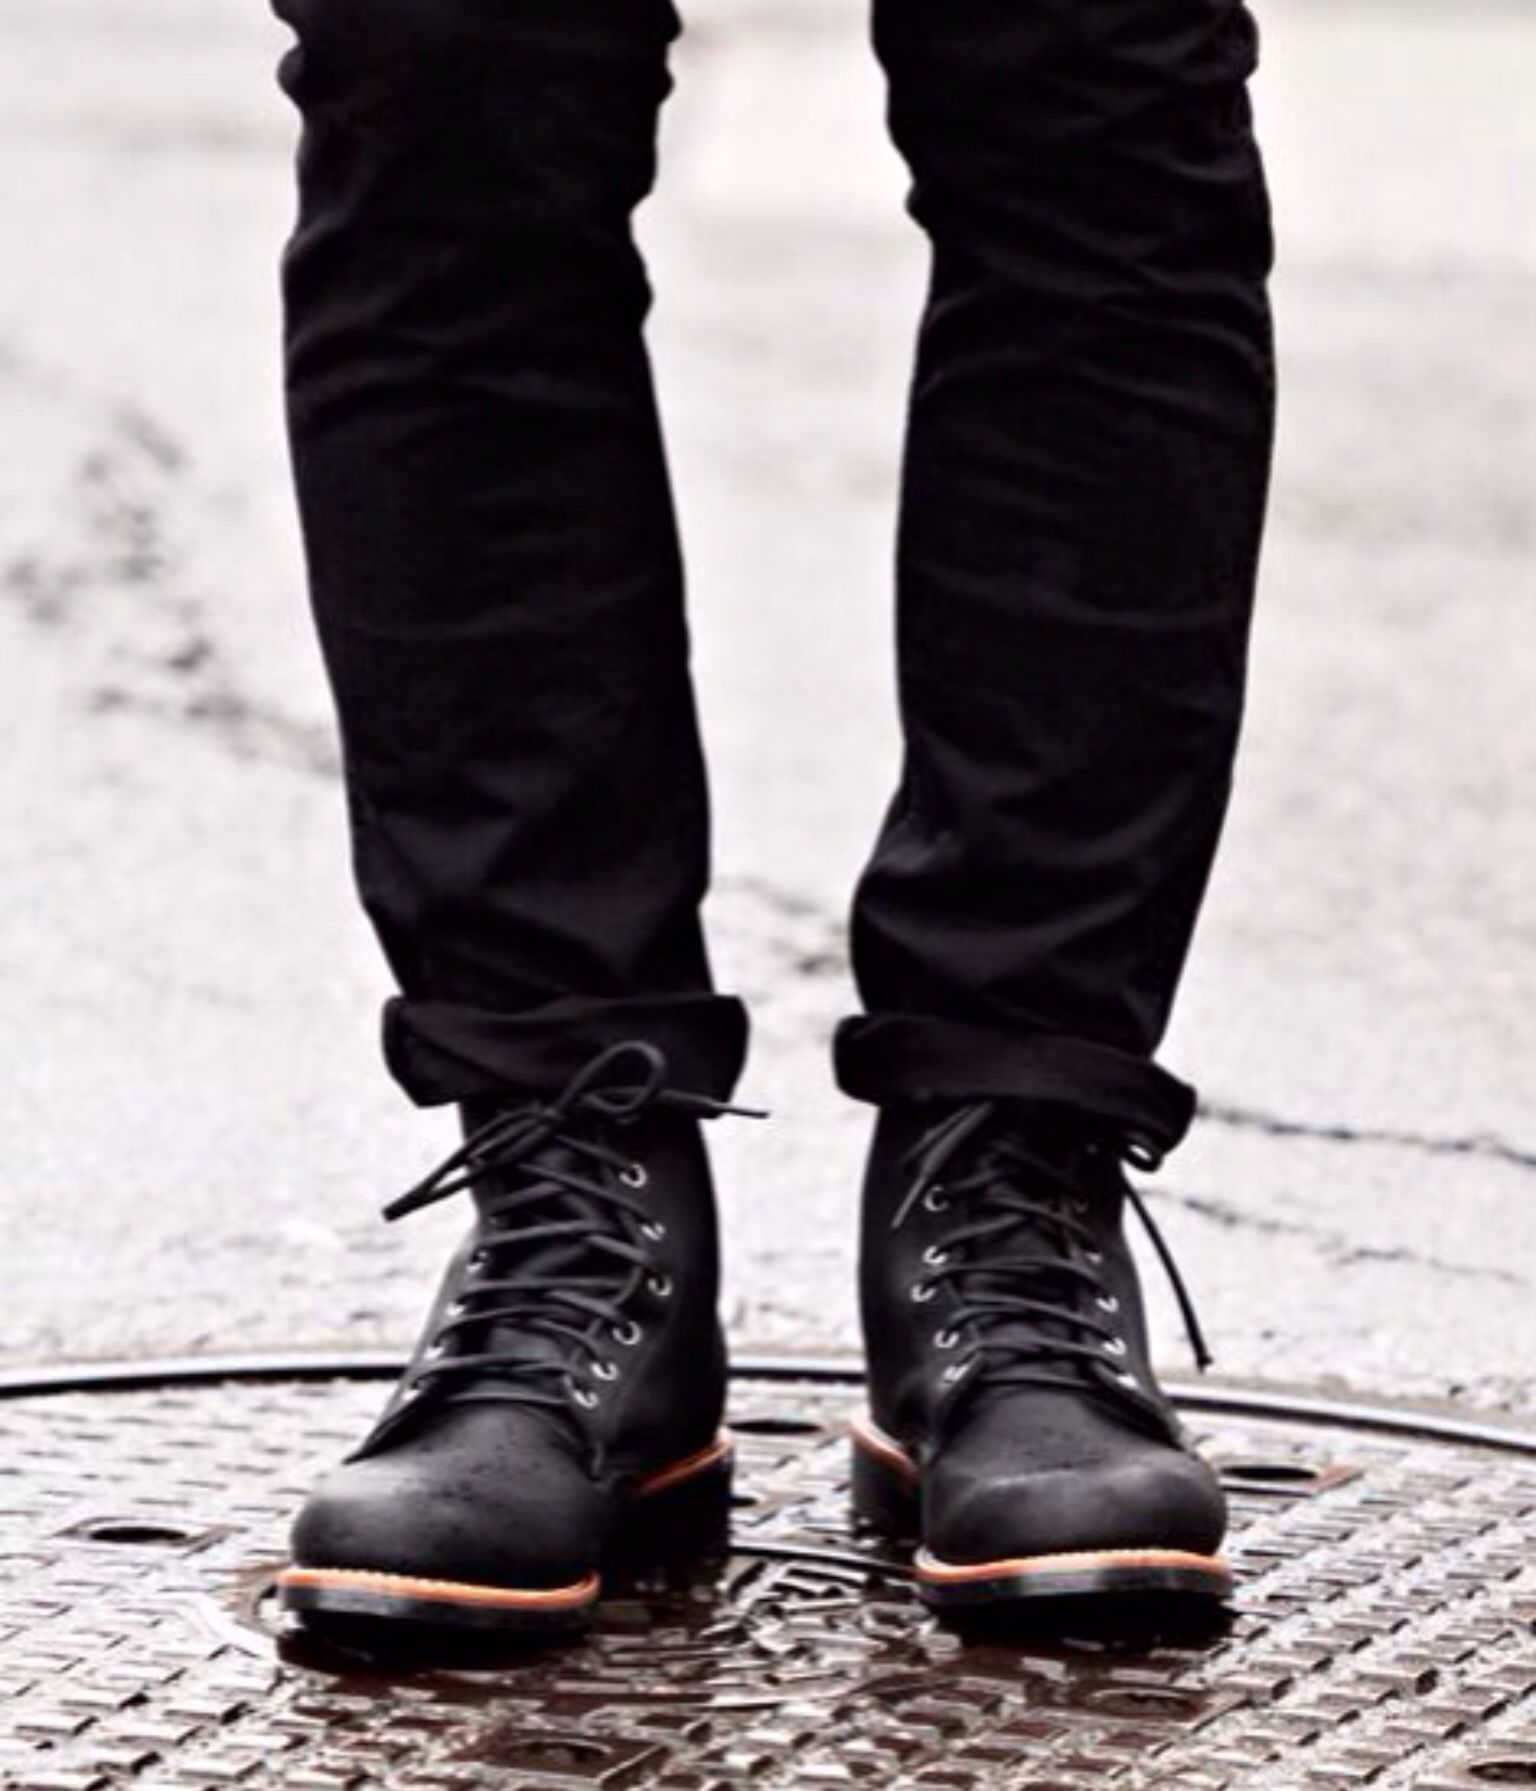 Black Red Wing Beckman My Style Chippewa Boots